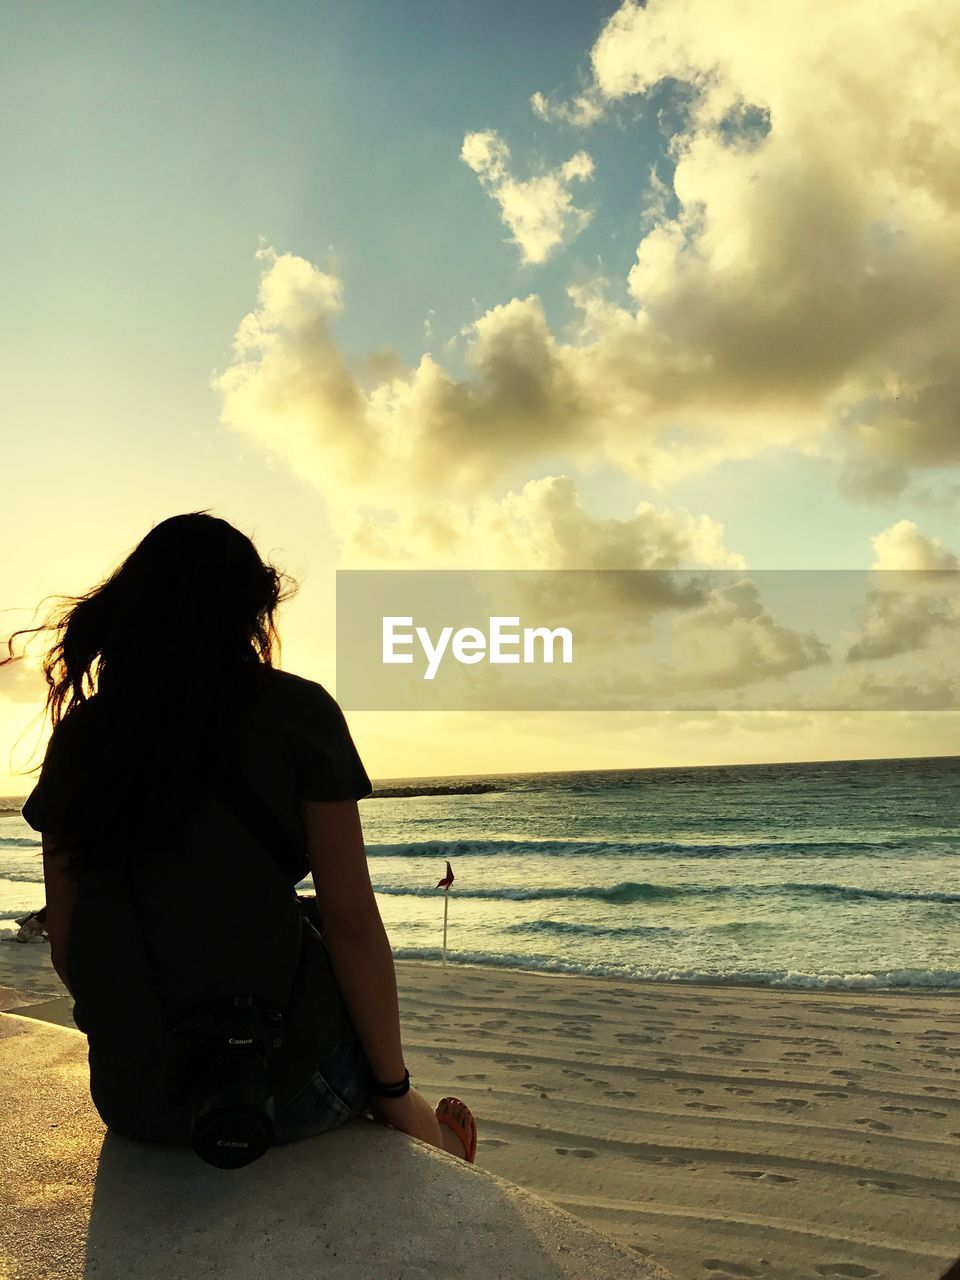 sea, one person, horizon over water, beach, sky, cloud - sky, water, real people, beauty in nature, sitting, nature, full length, sunset, rear view, women, tranquil scene, outdoors, leisure activity, relaxation, lifestyles, young women, day, young adult, one young woman only, adult, people